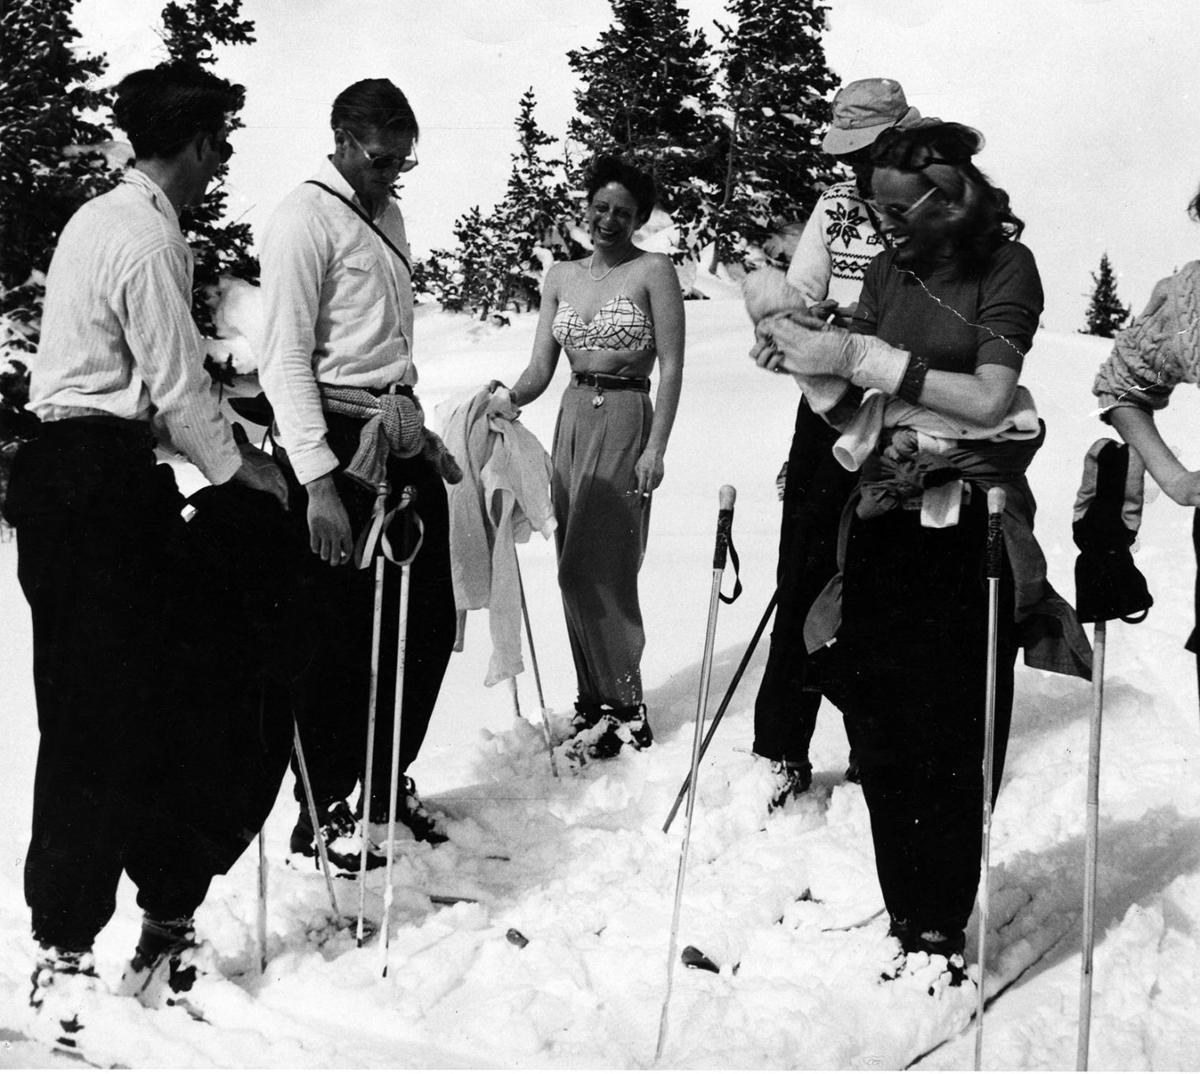 1974.065.0044_Group of Skiers, 1947-